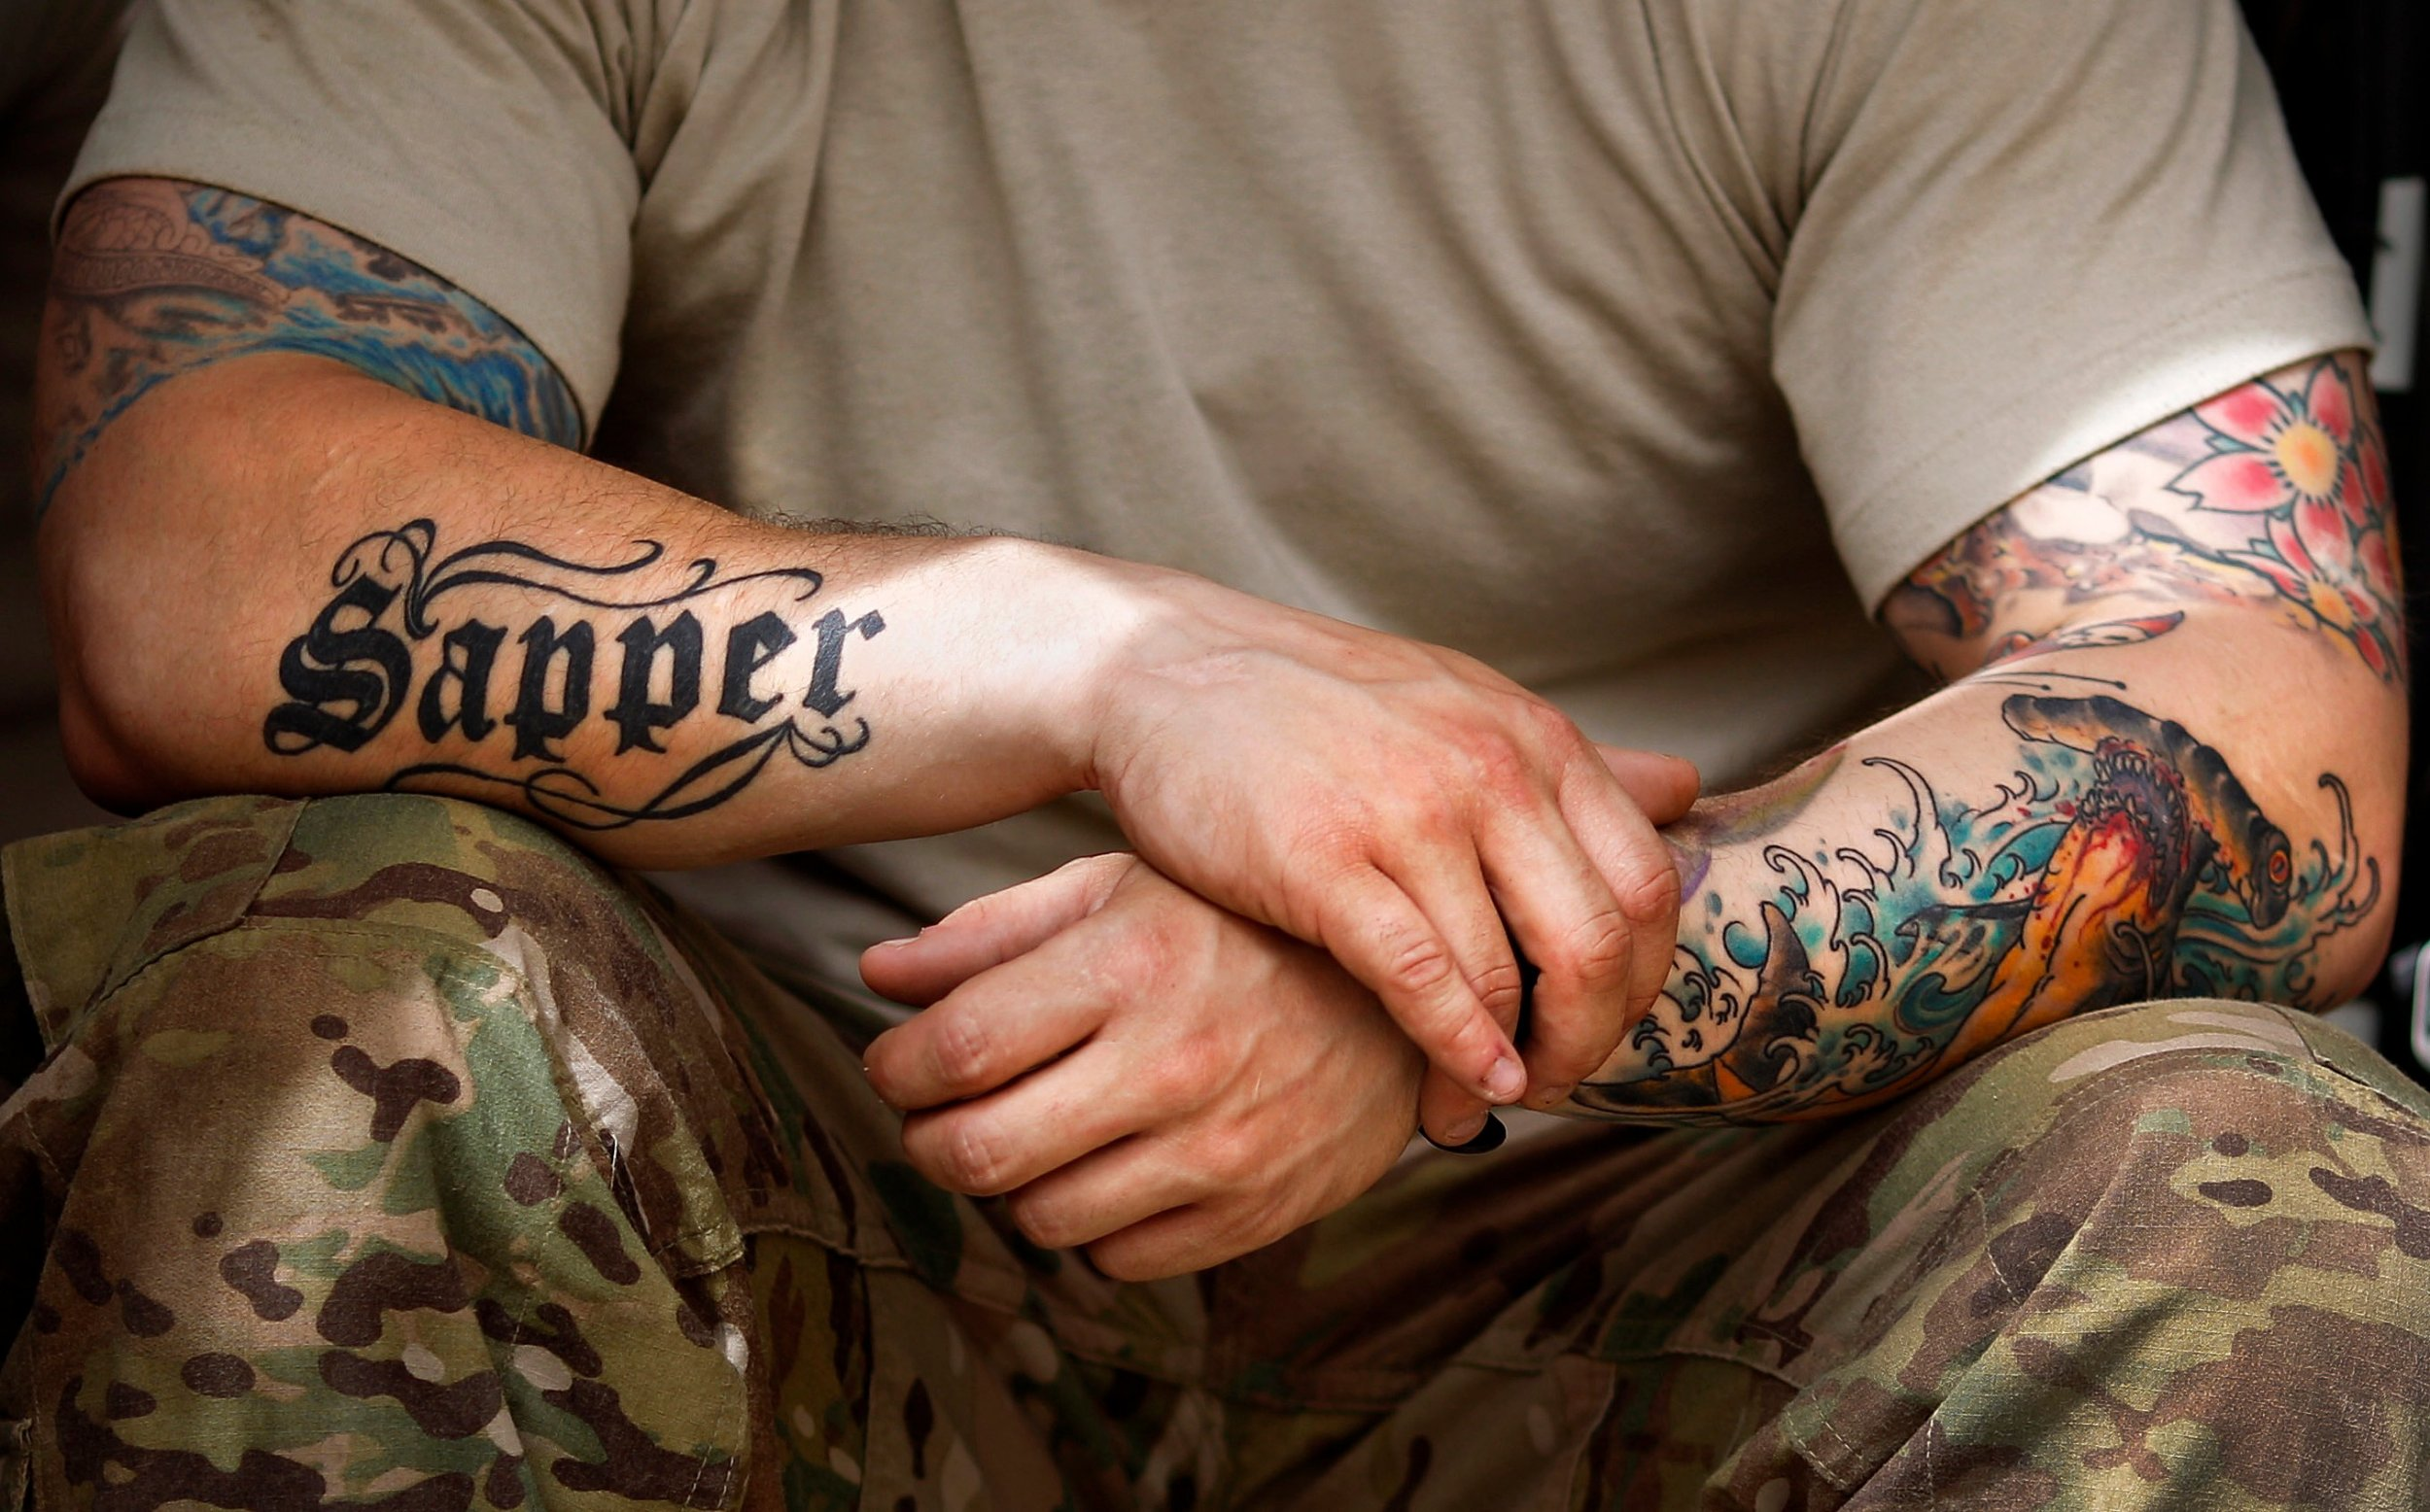 Pin By Jens Meurer On Tattoo: Tattoos Are Dishonorably Discharged